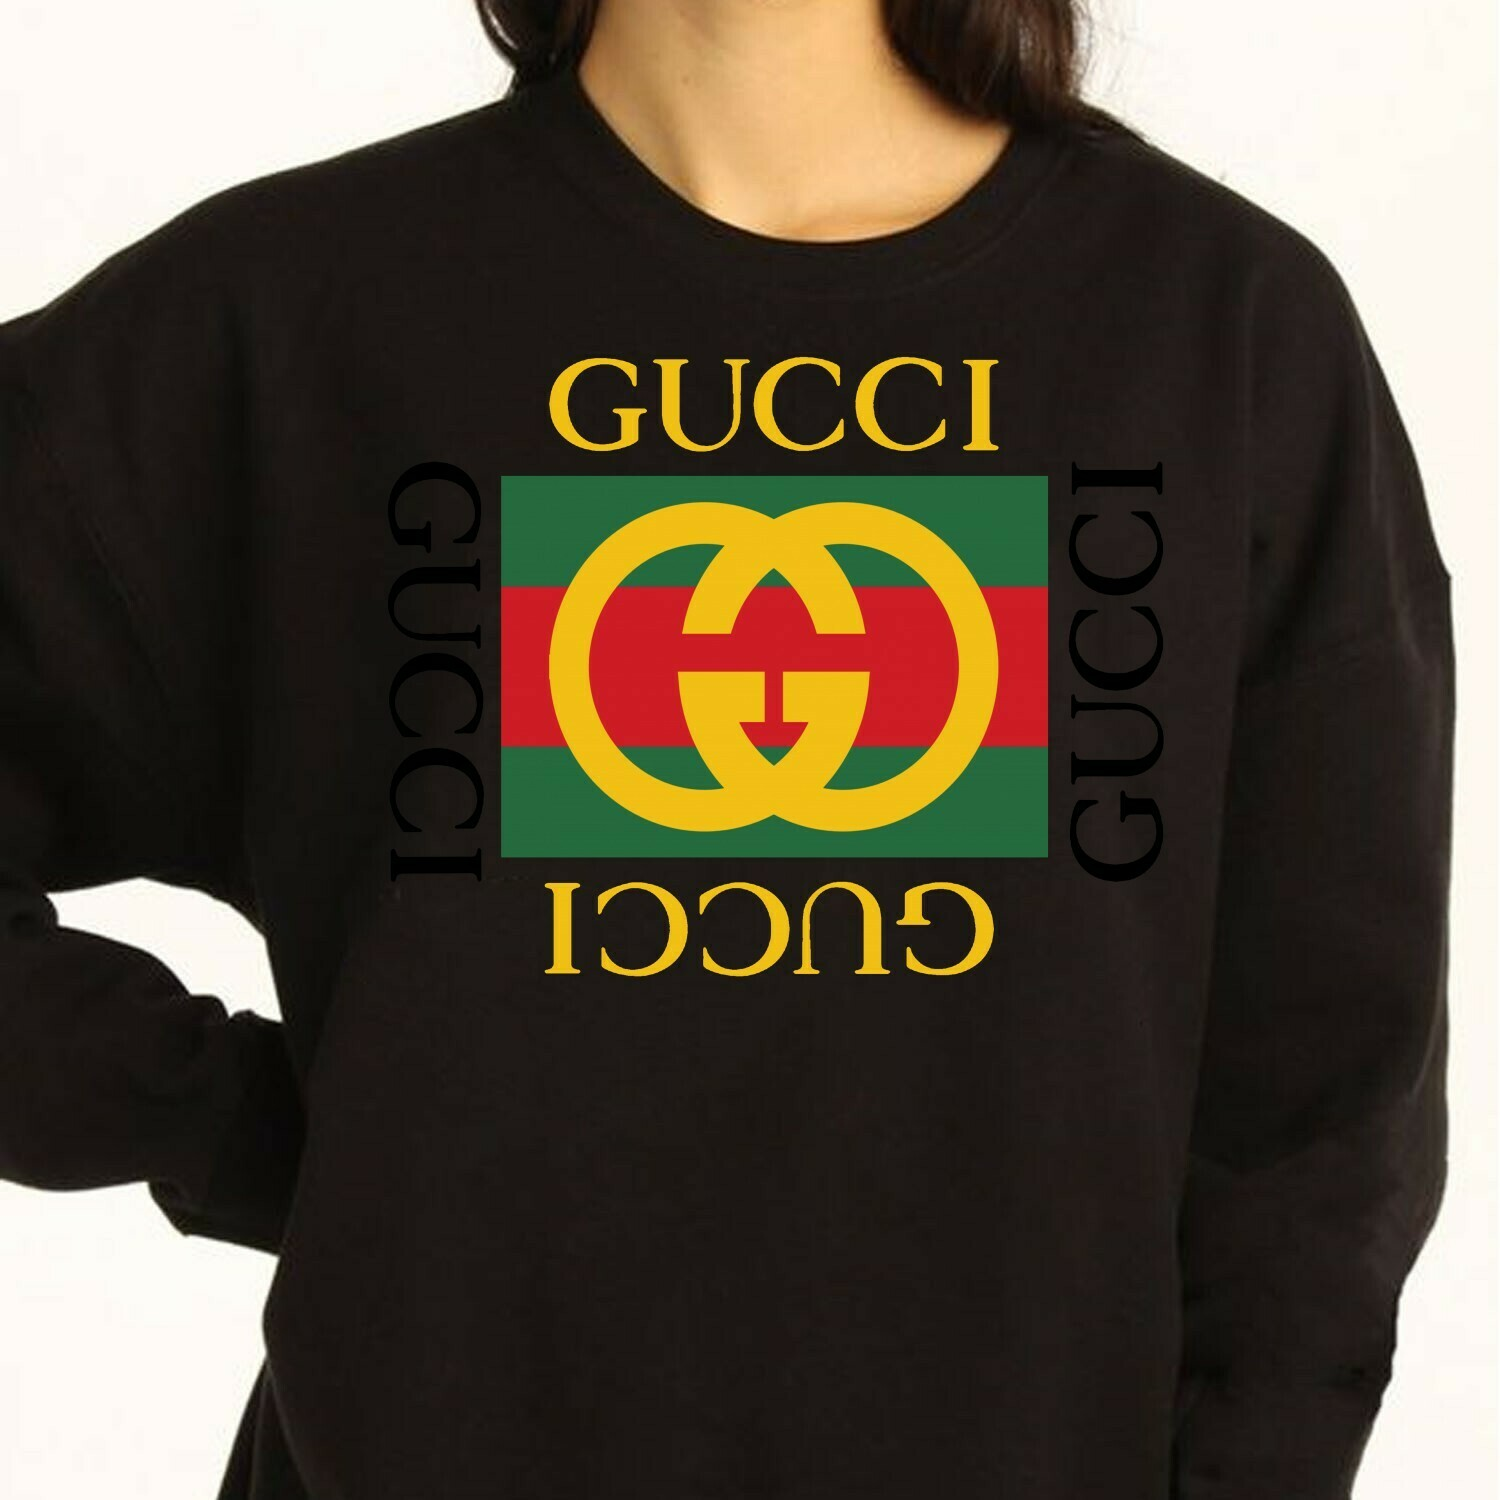 Classic Logo Gucci Clothing Brand Gucci Logo Gucci Design T-shirt Snake Vintage Fashion Luxury Shirts for Women Men Youth Kids T Shirt Long Sleeve Sweatshirt Hoodie Jolly Family Gifts